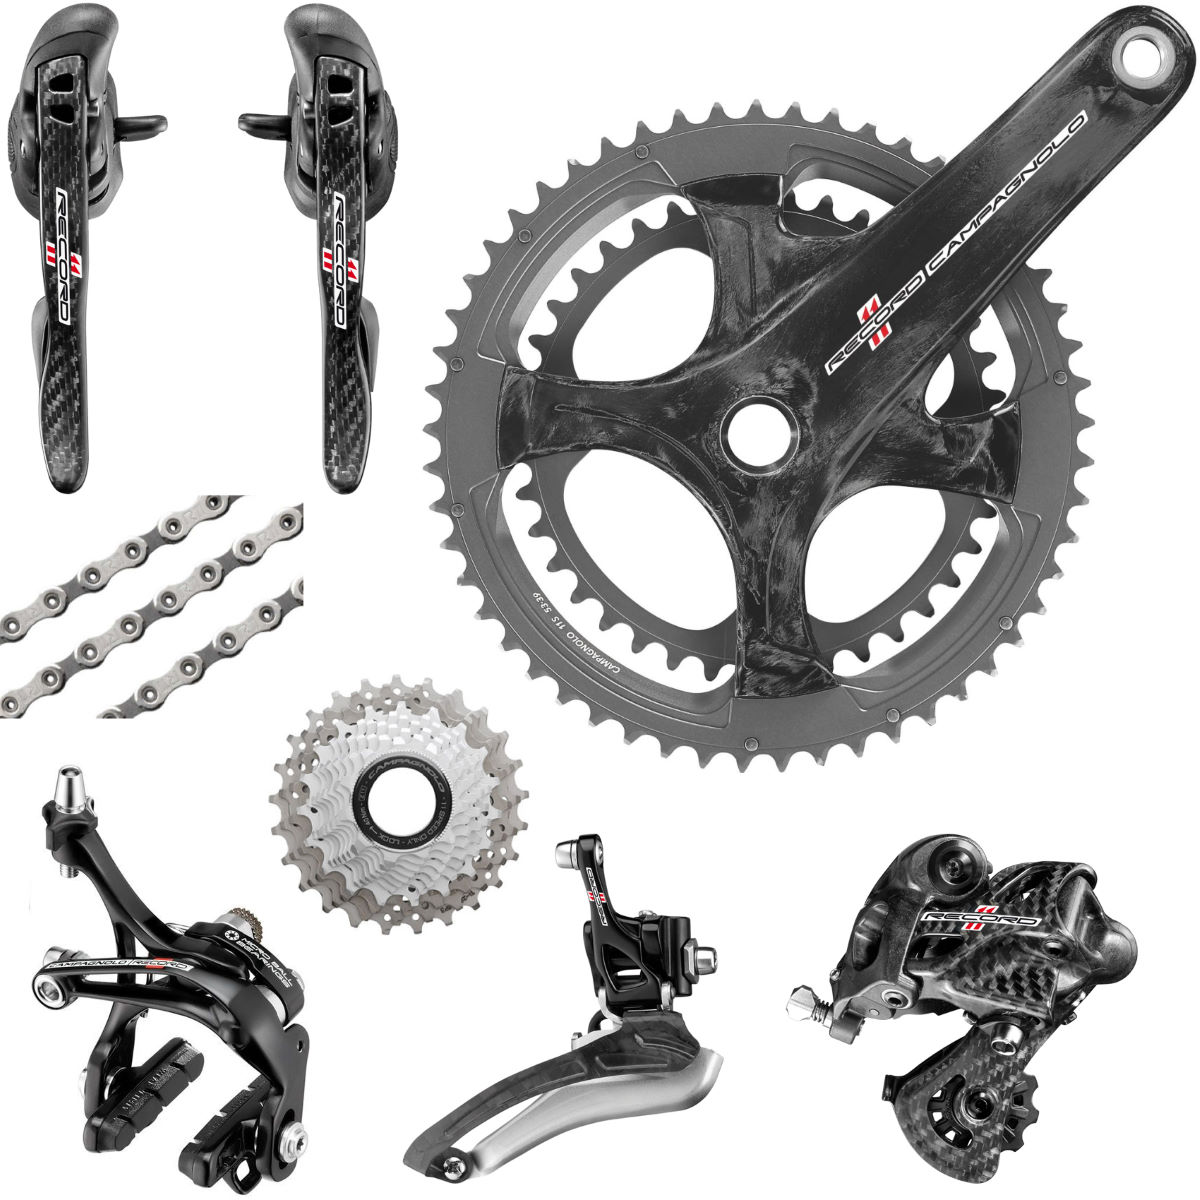 Groupe Campagnolo Record (Carbone) 11 vitesses - -170mm x 50/34 Black 12-27 cassette Groupes